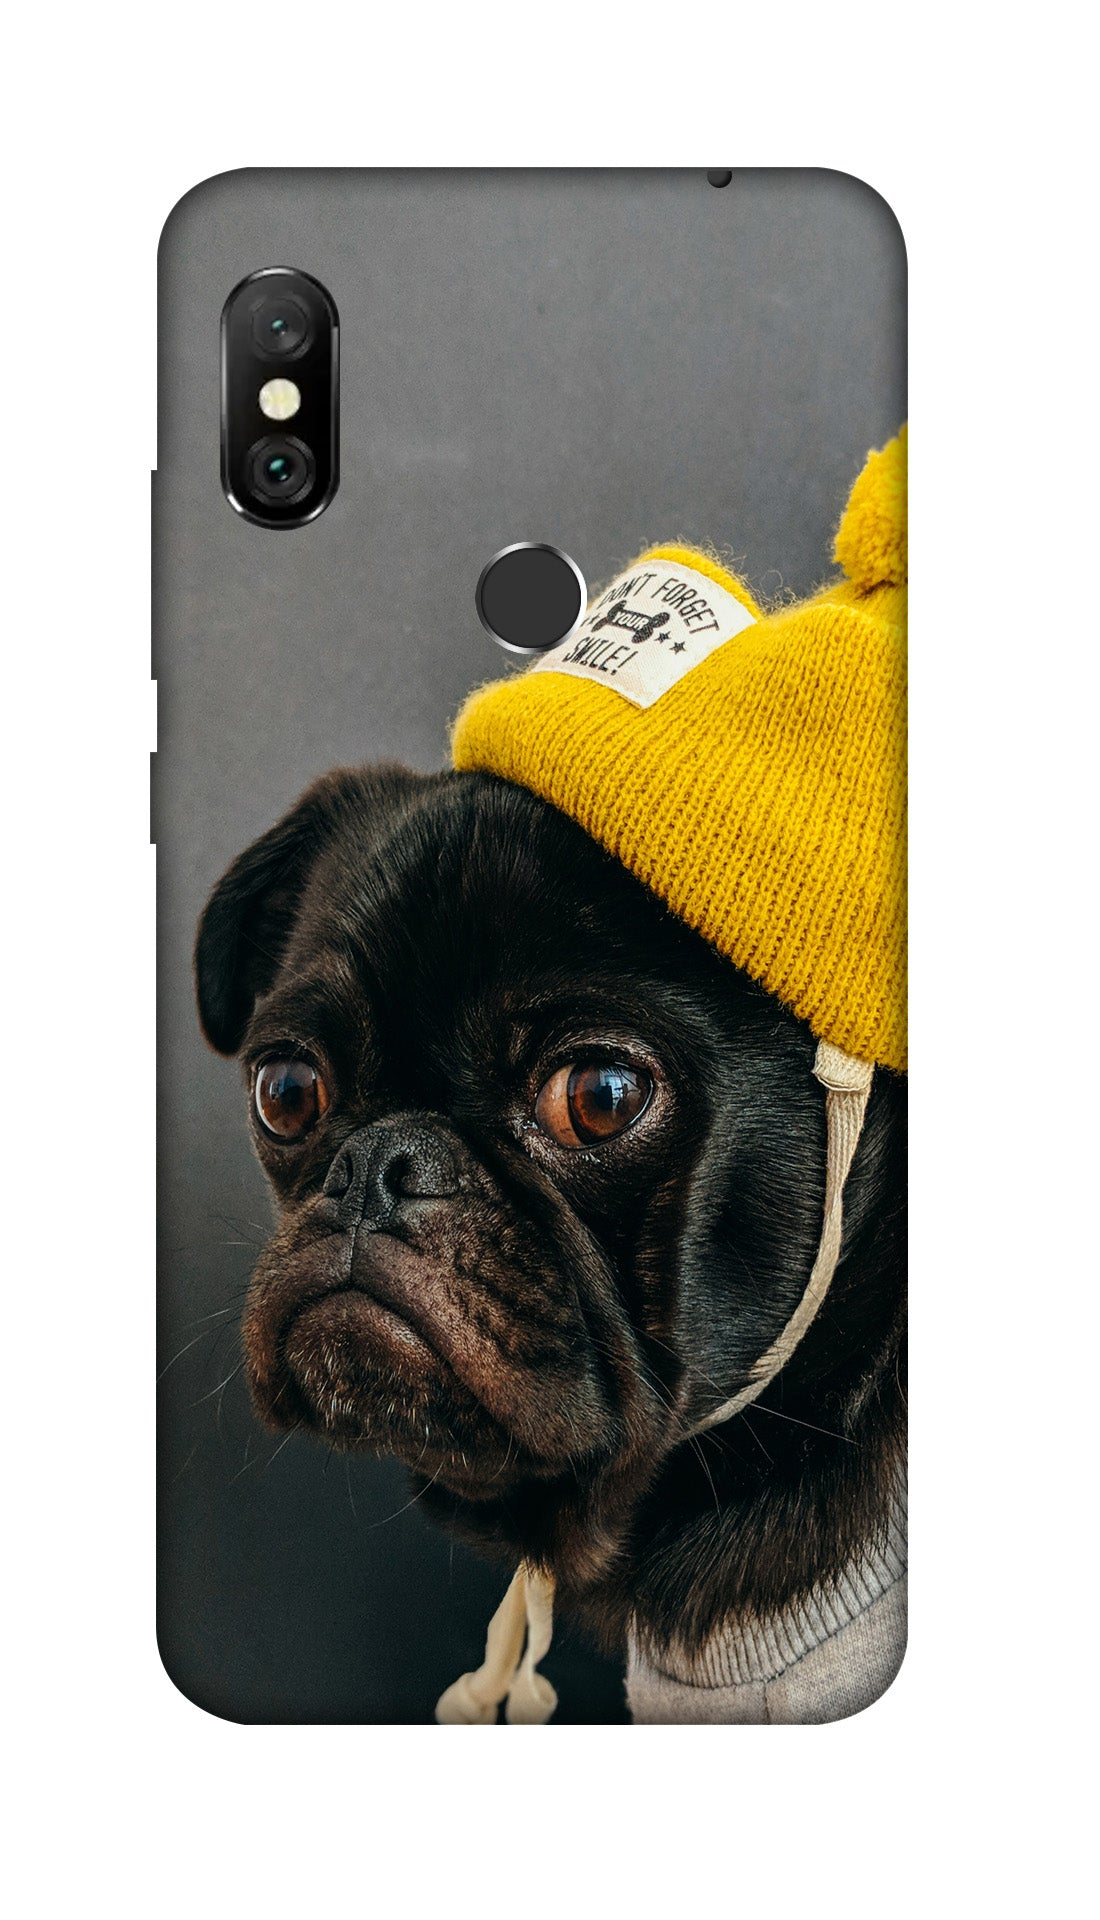 Cutty Dog Hard Case Cover For Redmi Note 6 Pro